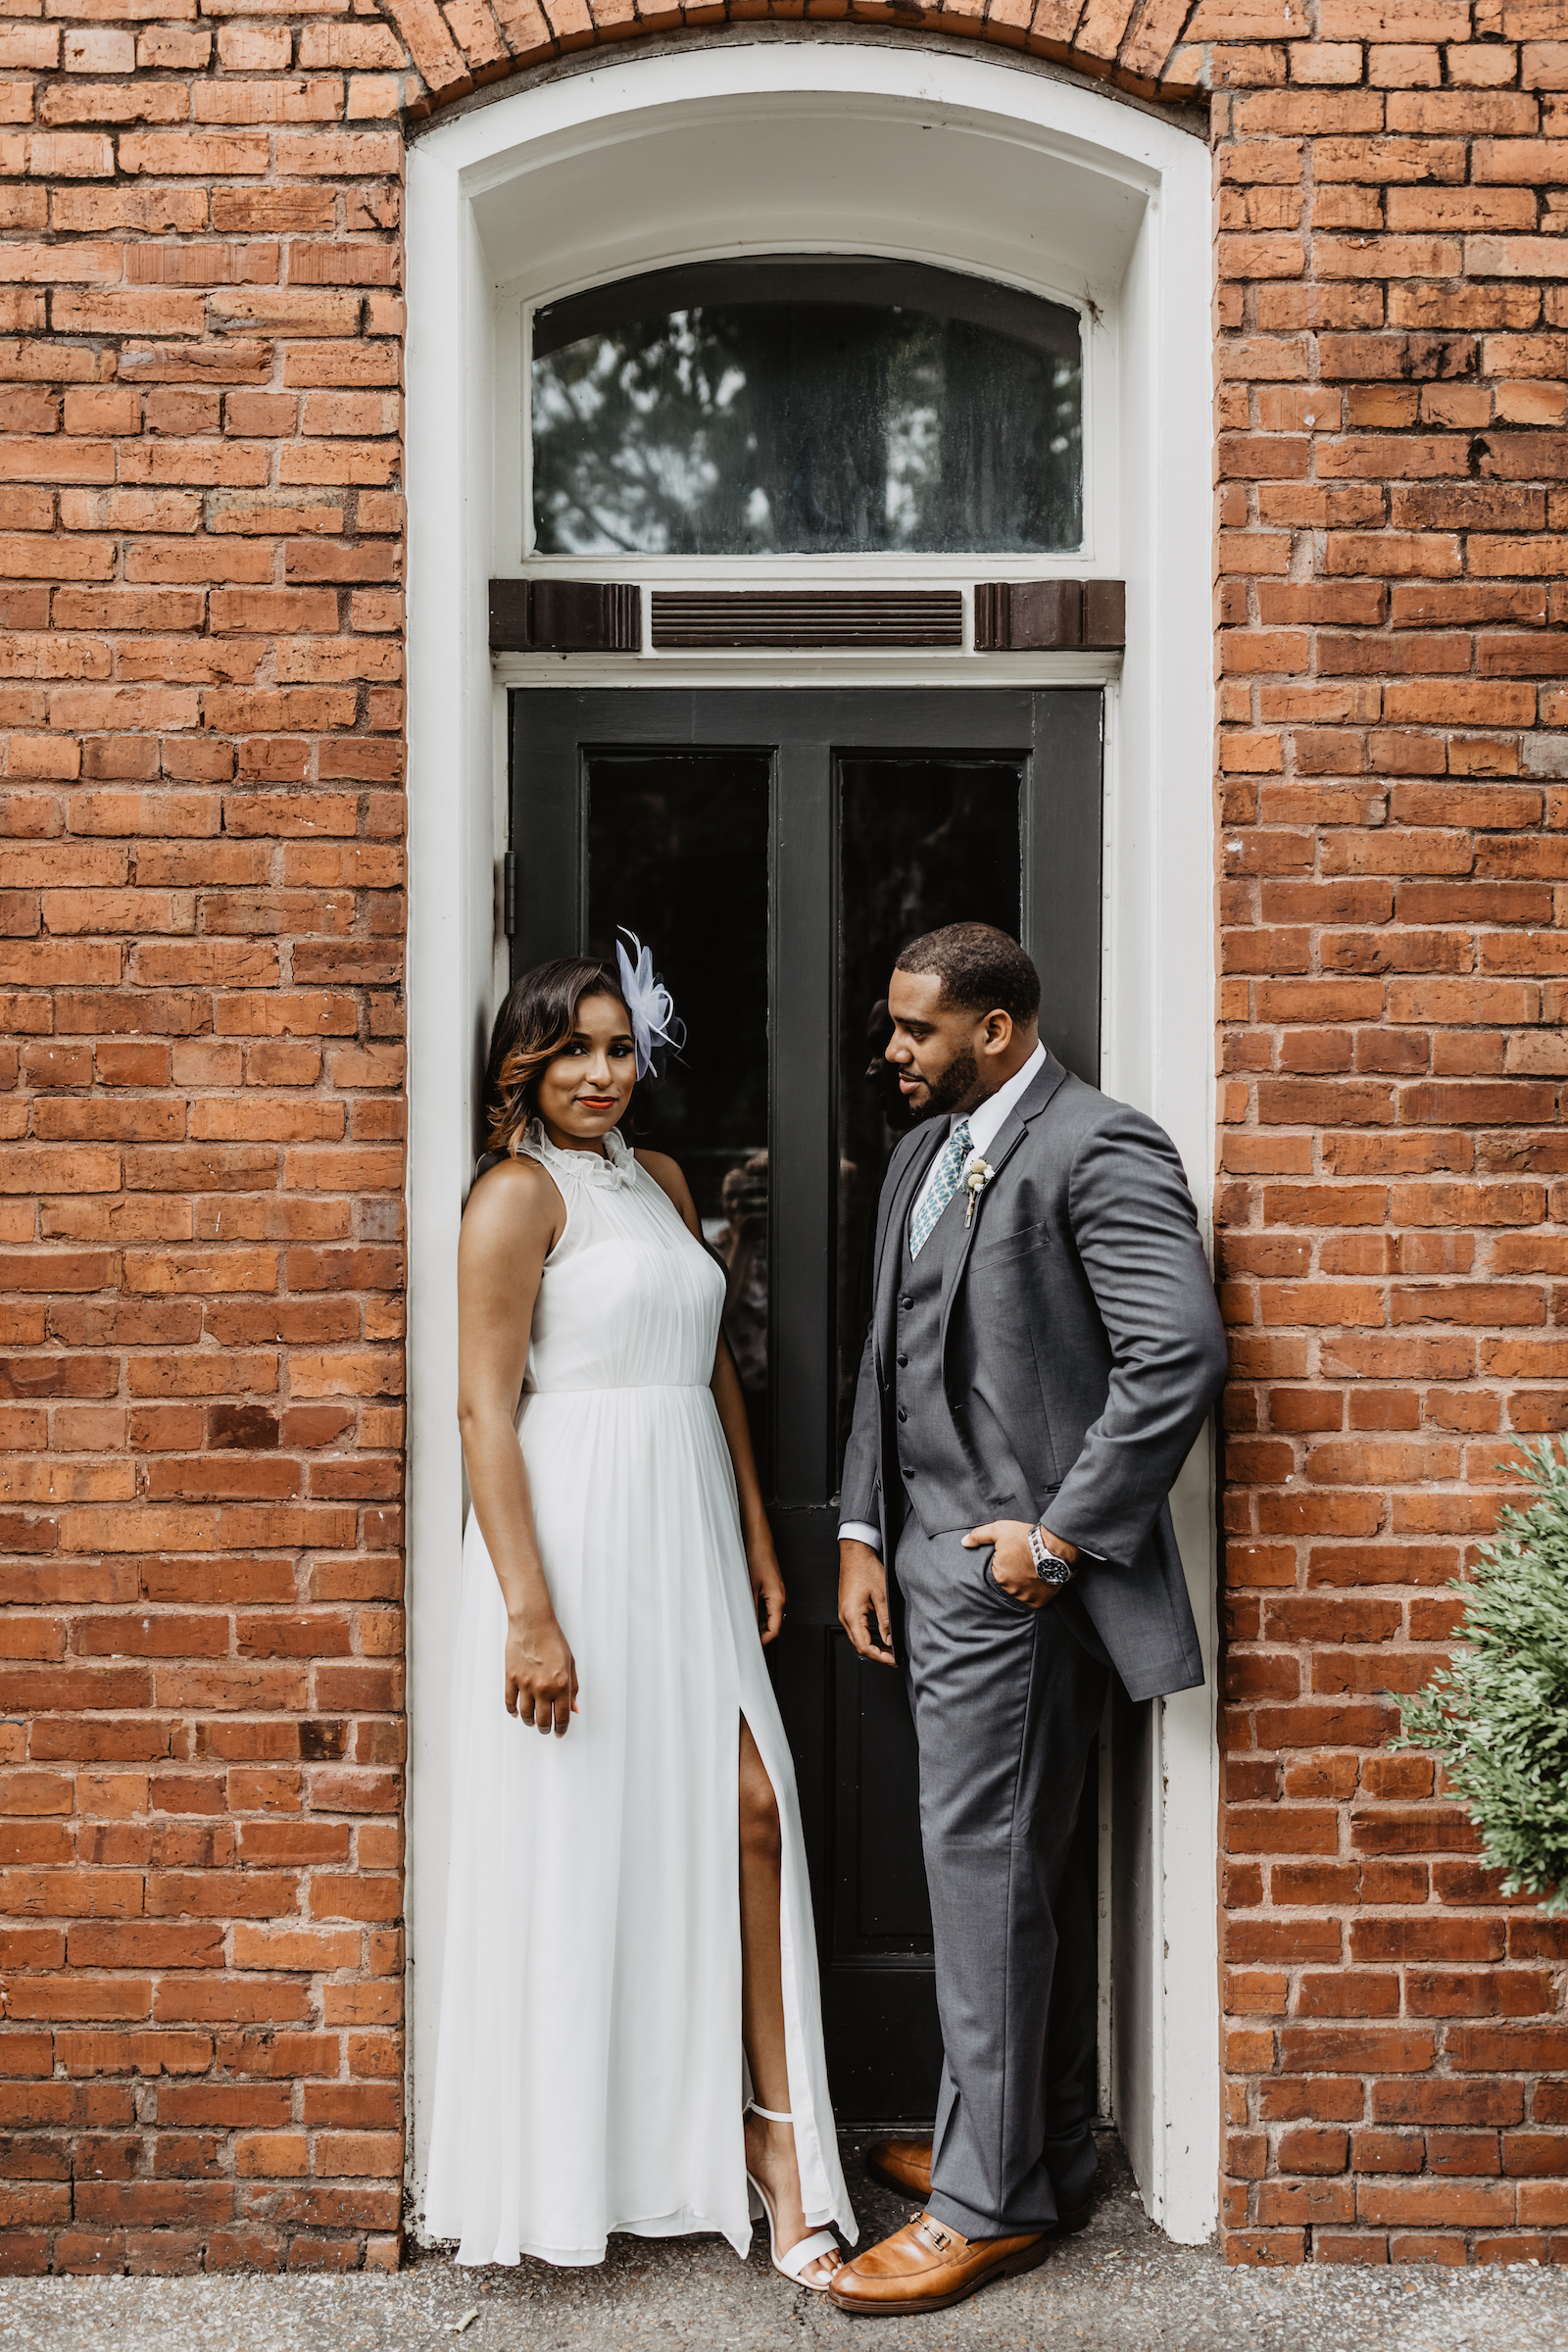 Creative wedding photos: Music City Merger wedding inspiration featured on Nashville Bride Guide